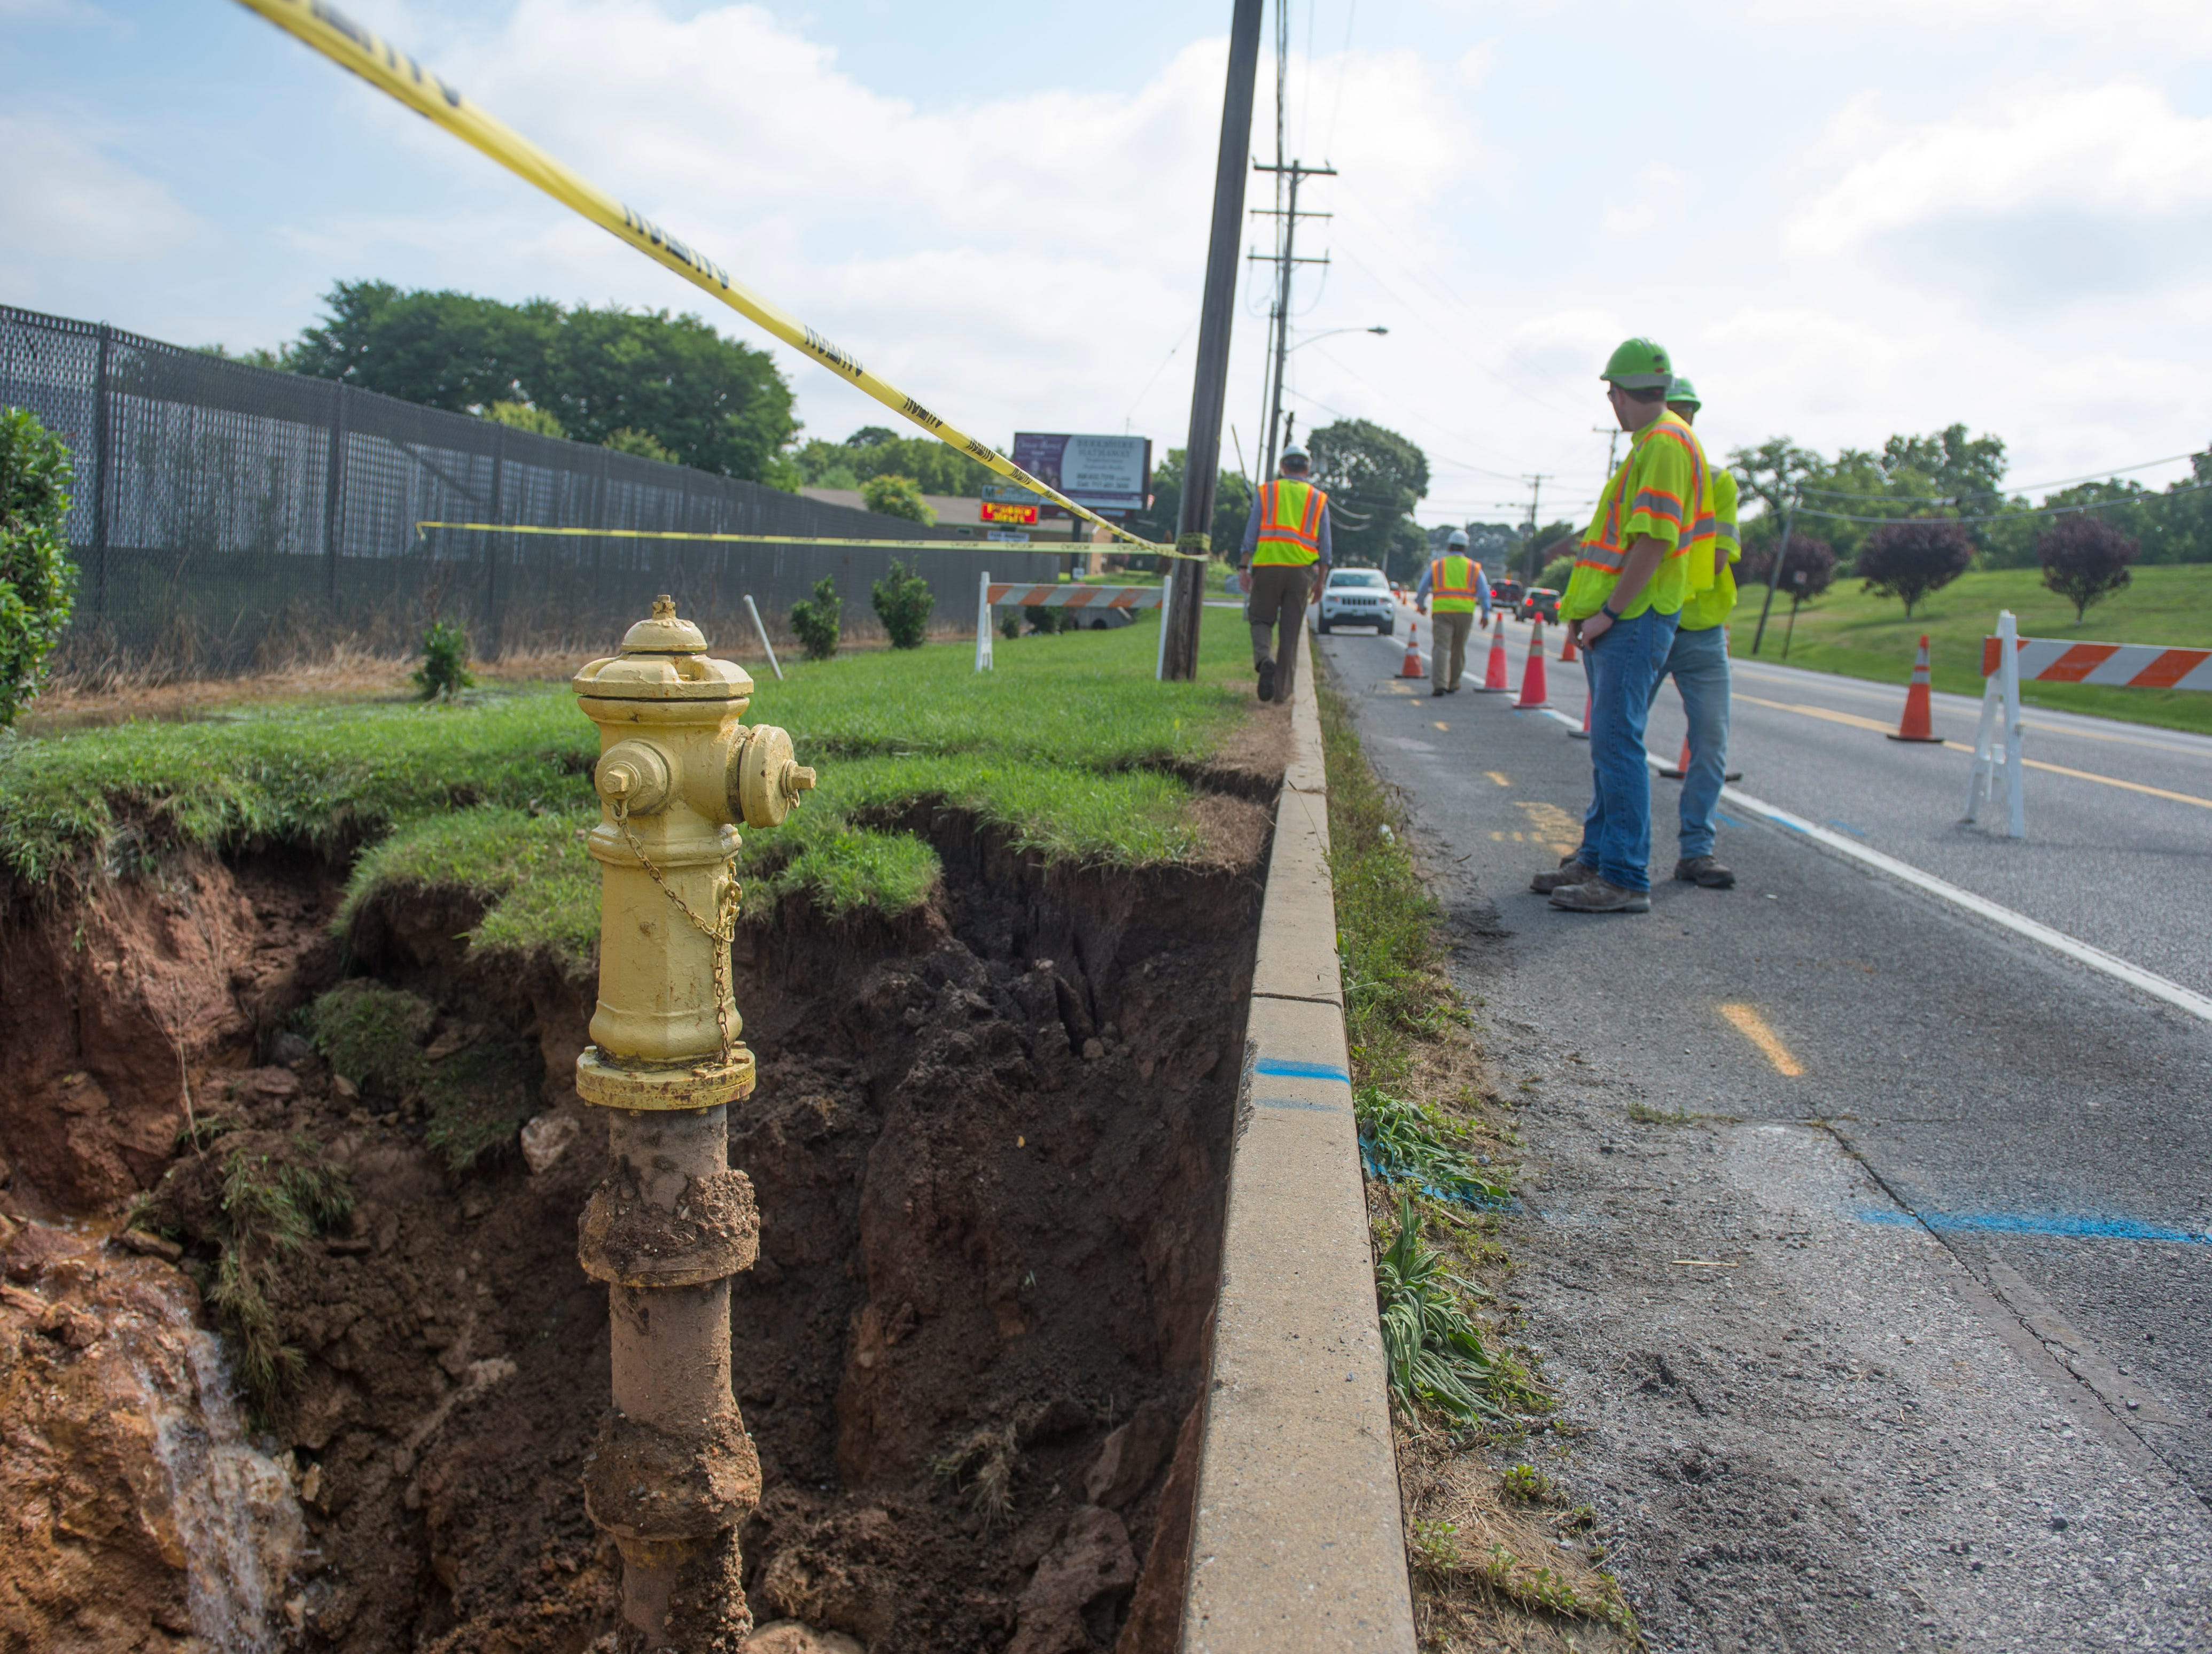 A fire hydrant was washed out due to the sink hole near Route 30 in Thomasville on July 26, 2018.